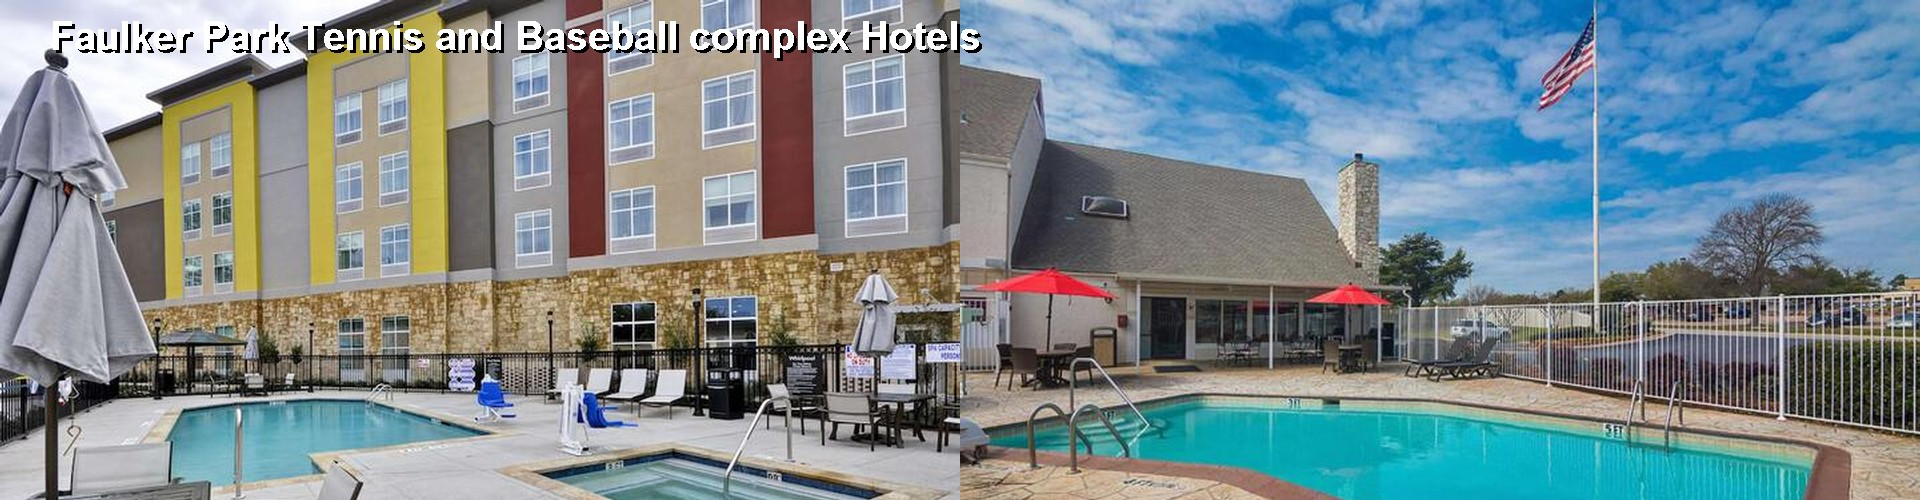 5 Best Hotels near Faulker Park Tennis and Baseball complex